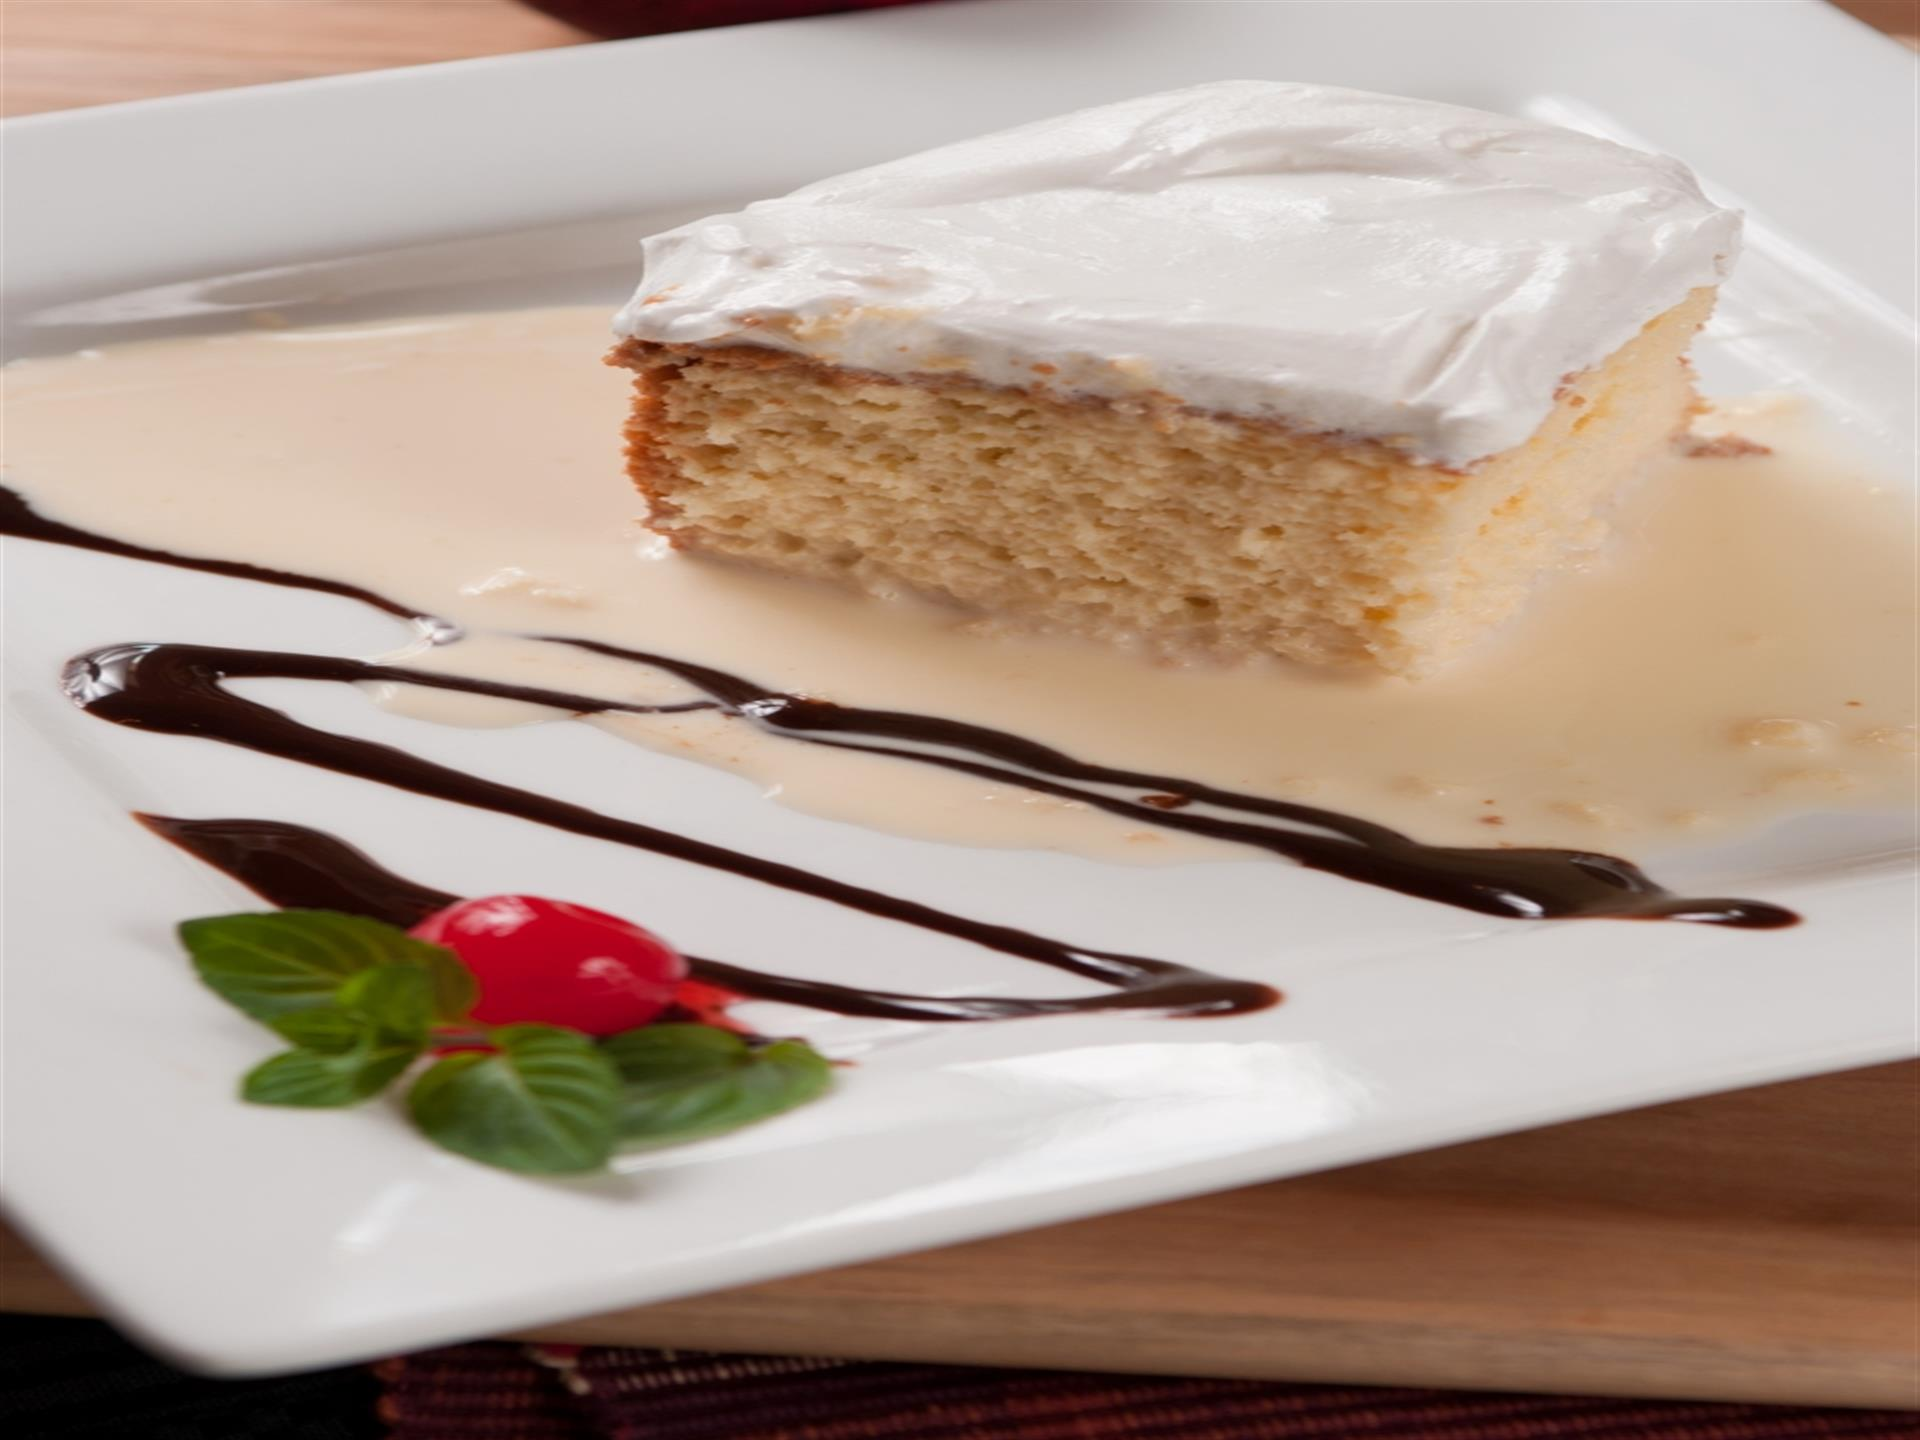 tres leches (three milks). Slice of tres leches cake with chocolate sauce.